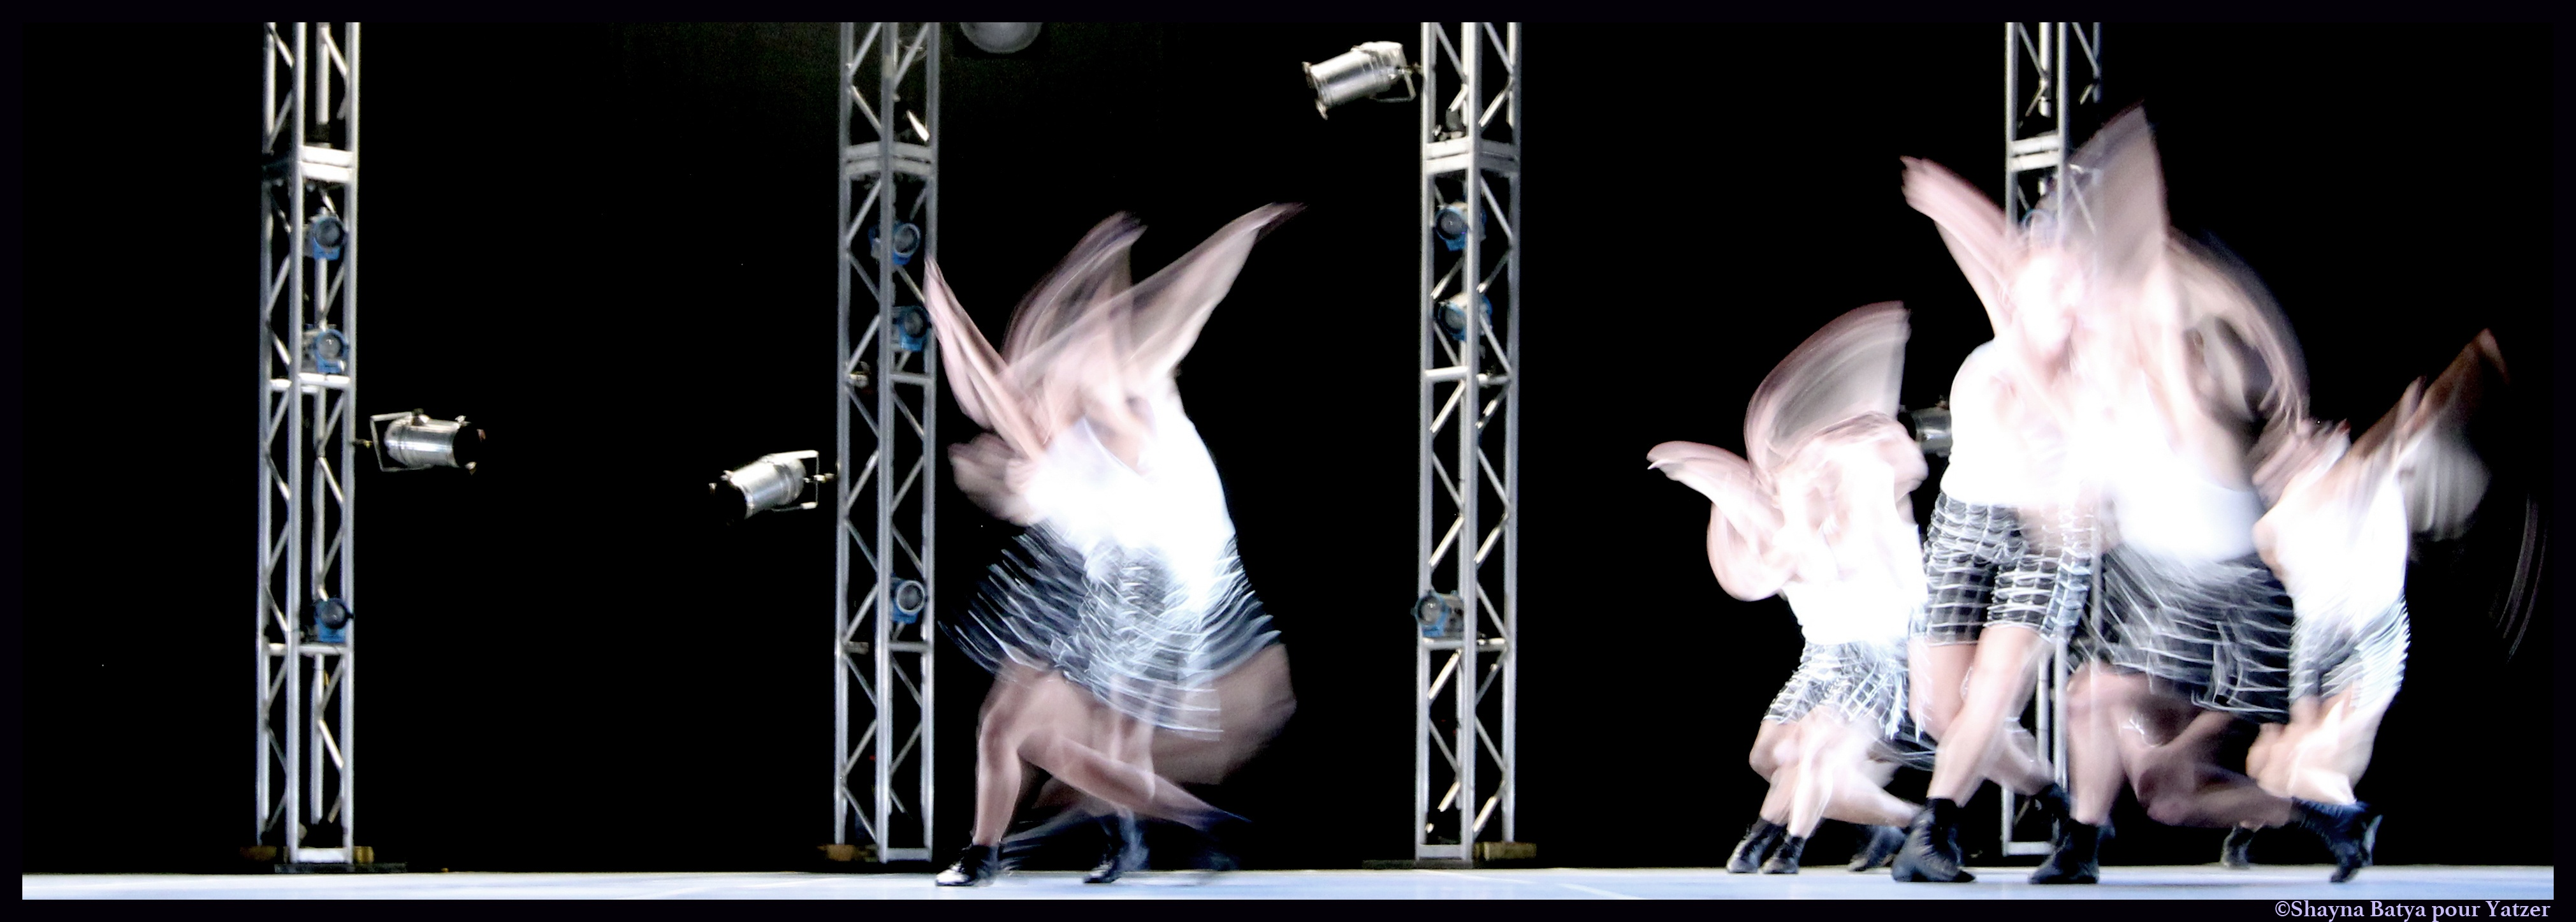 couv_Hearts-and-Arrows_Theatre_du_Chatelet_L-A-Dance_Project©Shayna_Batya_Yatzer_@loeilodoliv